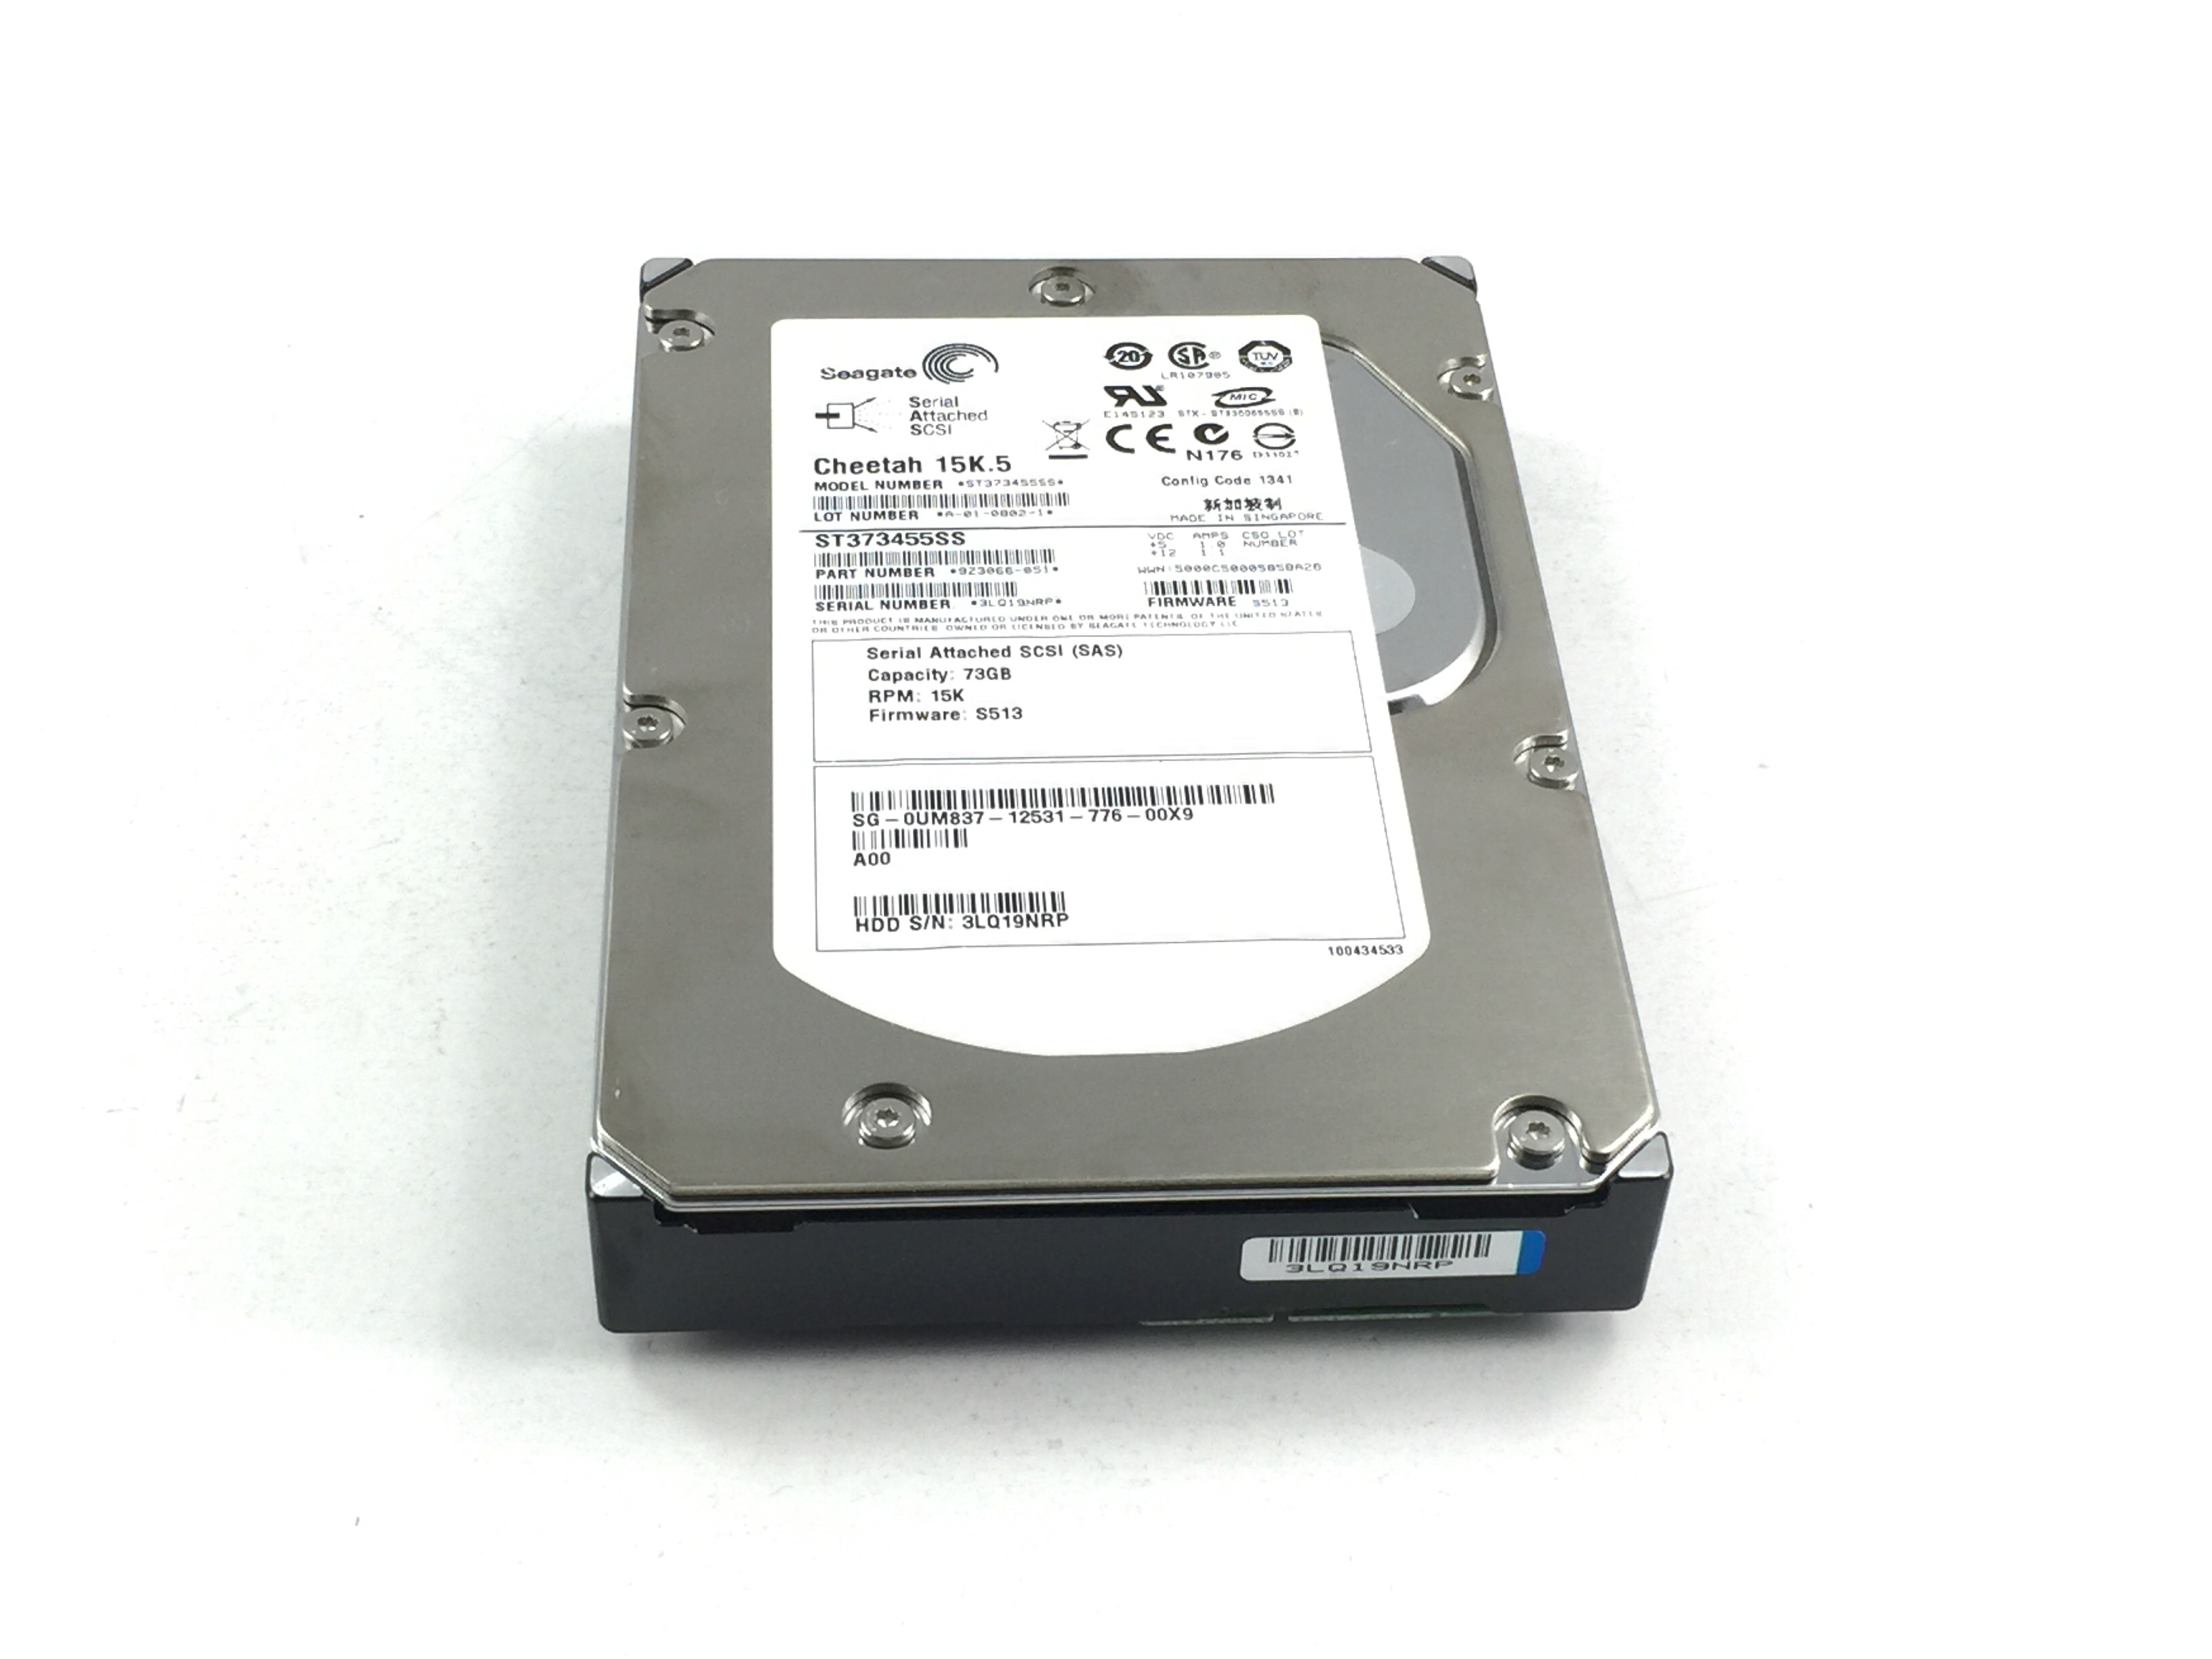 Dell Cheetah 73GB 15K 3Gbps SAS 3.5'' Hard Drive (UM837)